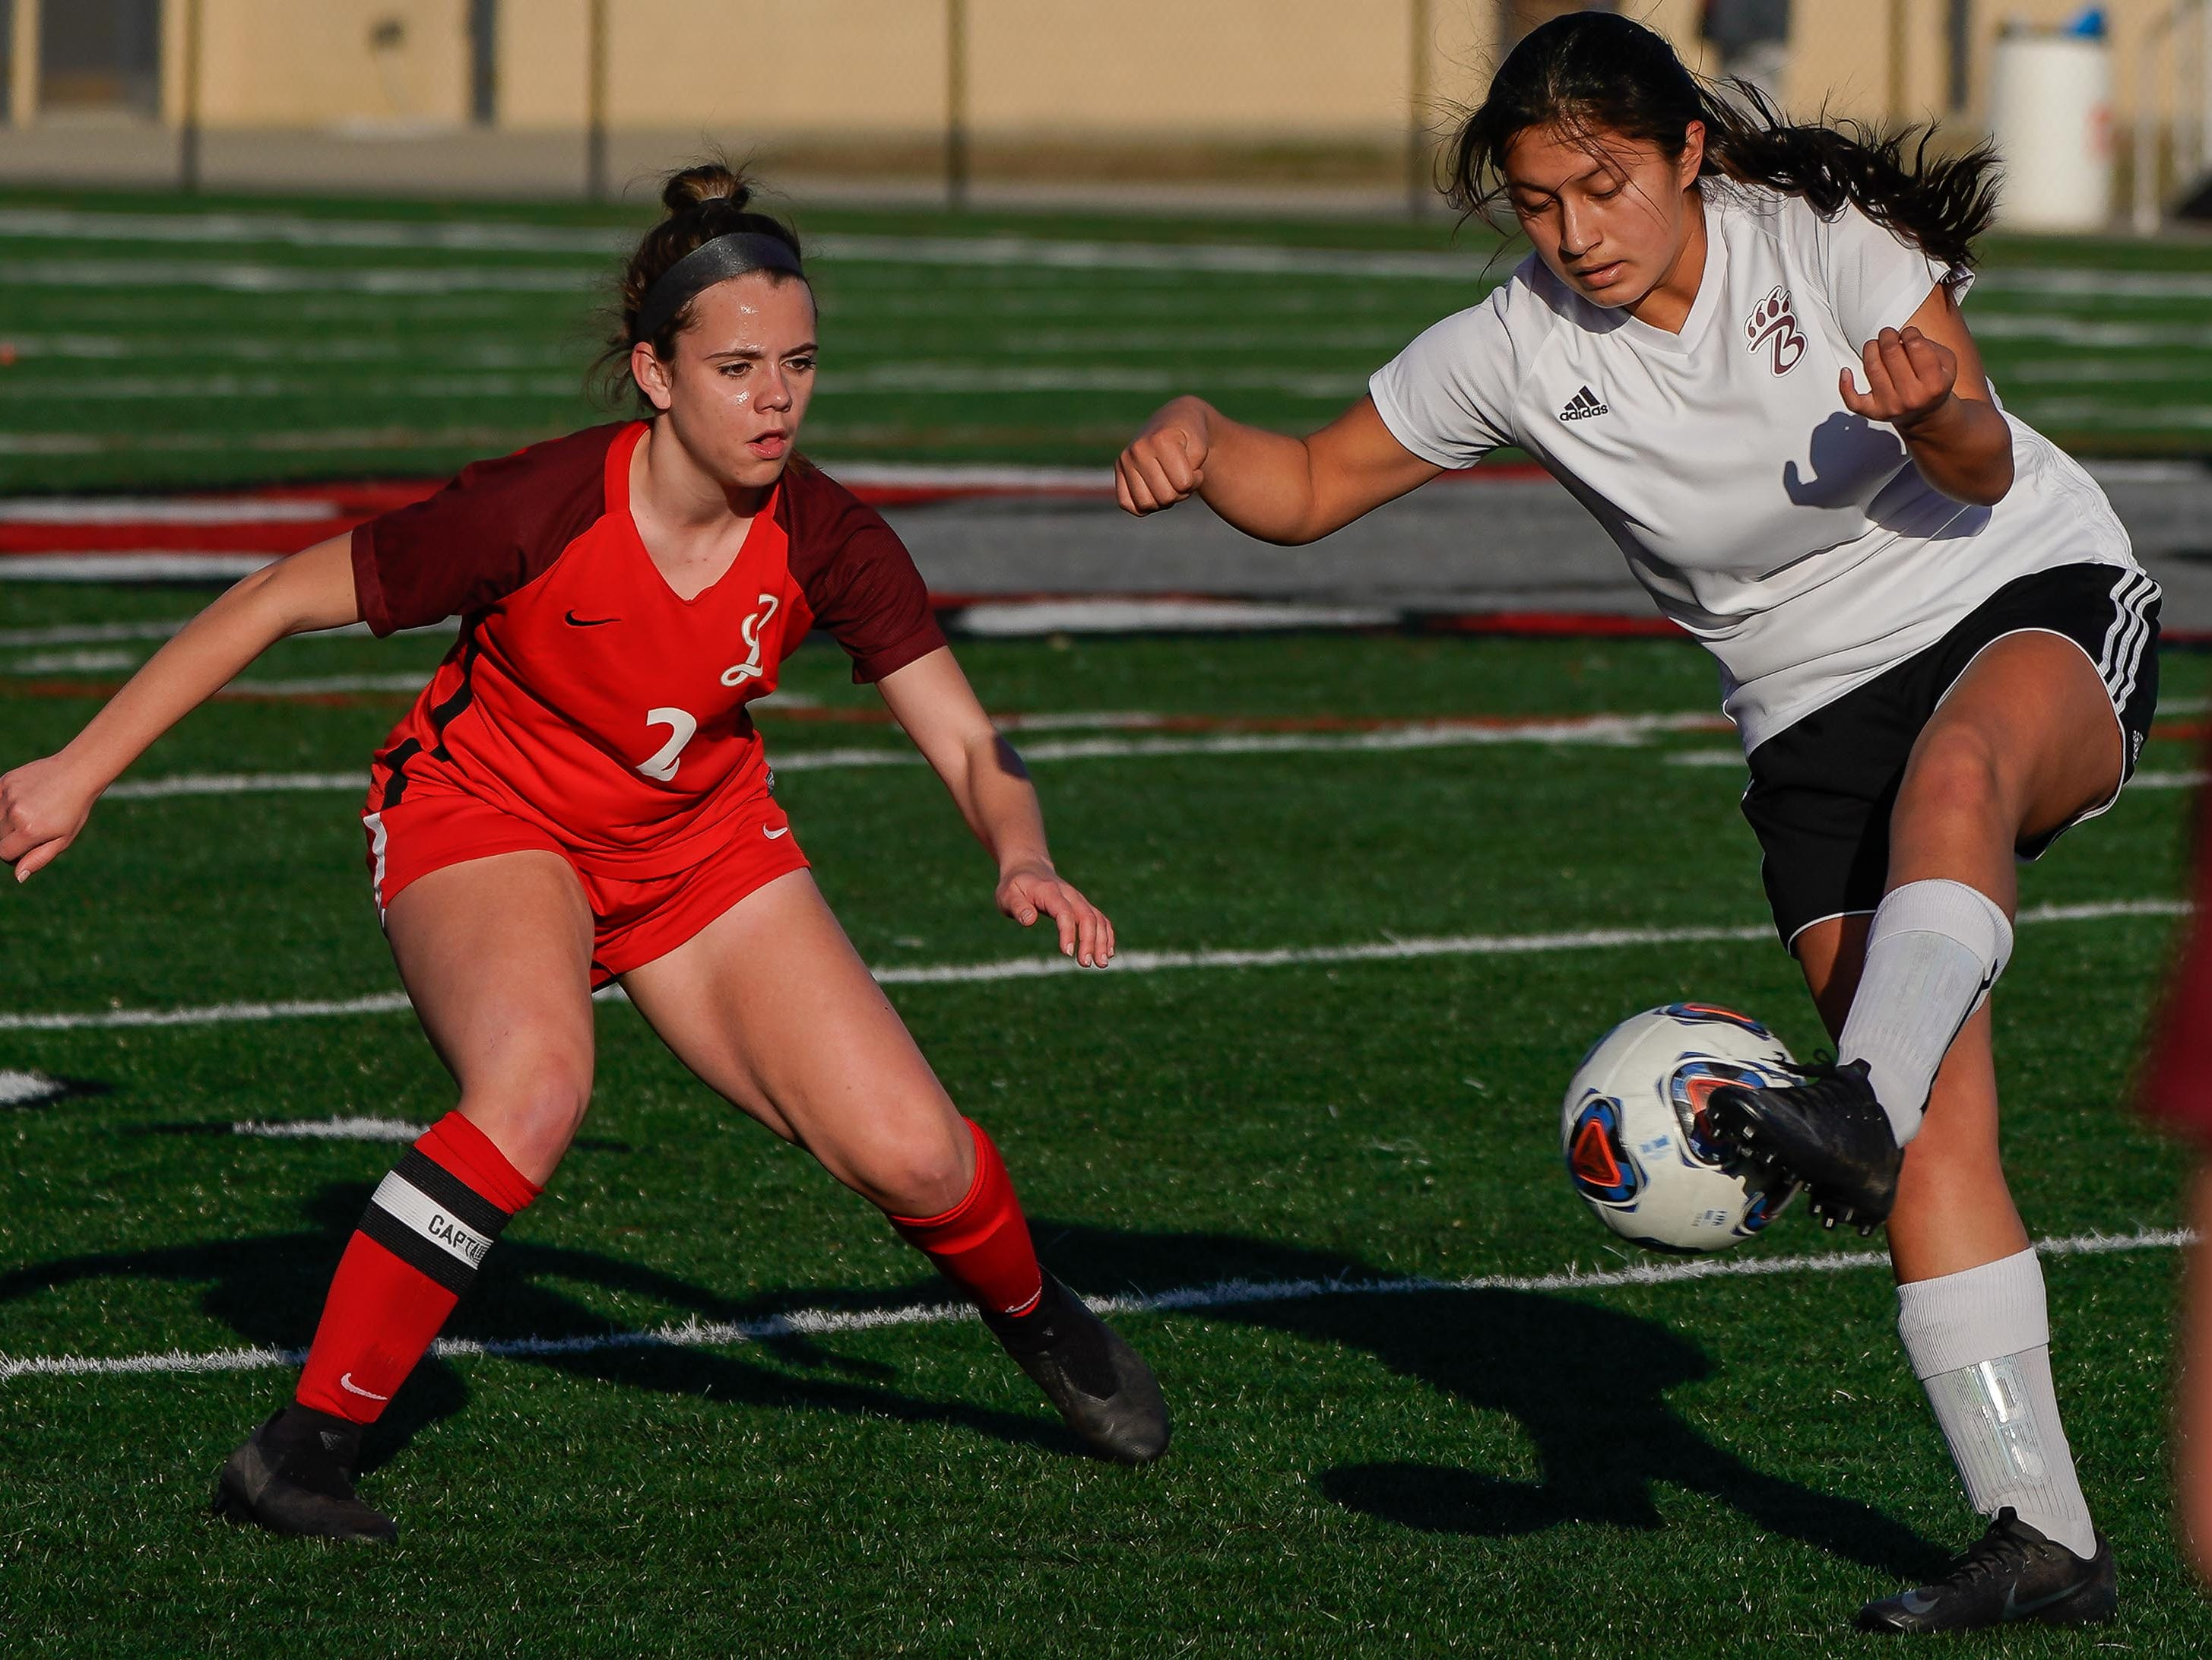 Long Beach's Nathalie Salvador (26) kicks a ball against Lafayette's Marissa Harrison (2) during the MHSAA 5A Girls Soccer Championships held at Brandon High School in Brandon, MS, Saturday February 9, 2019.(Bob Smith-For The Clarion Ledger)